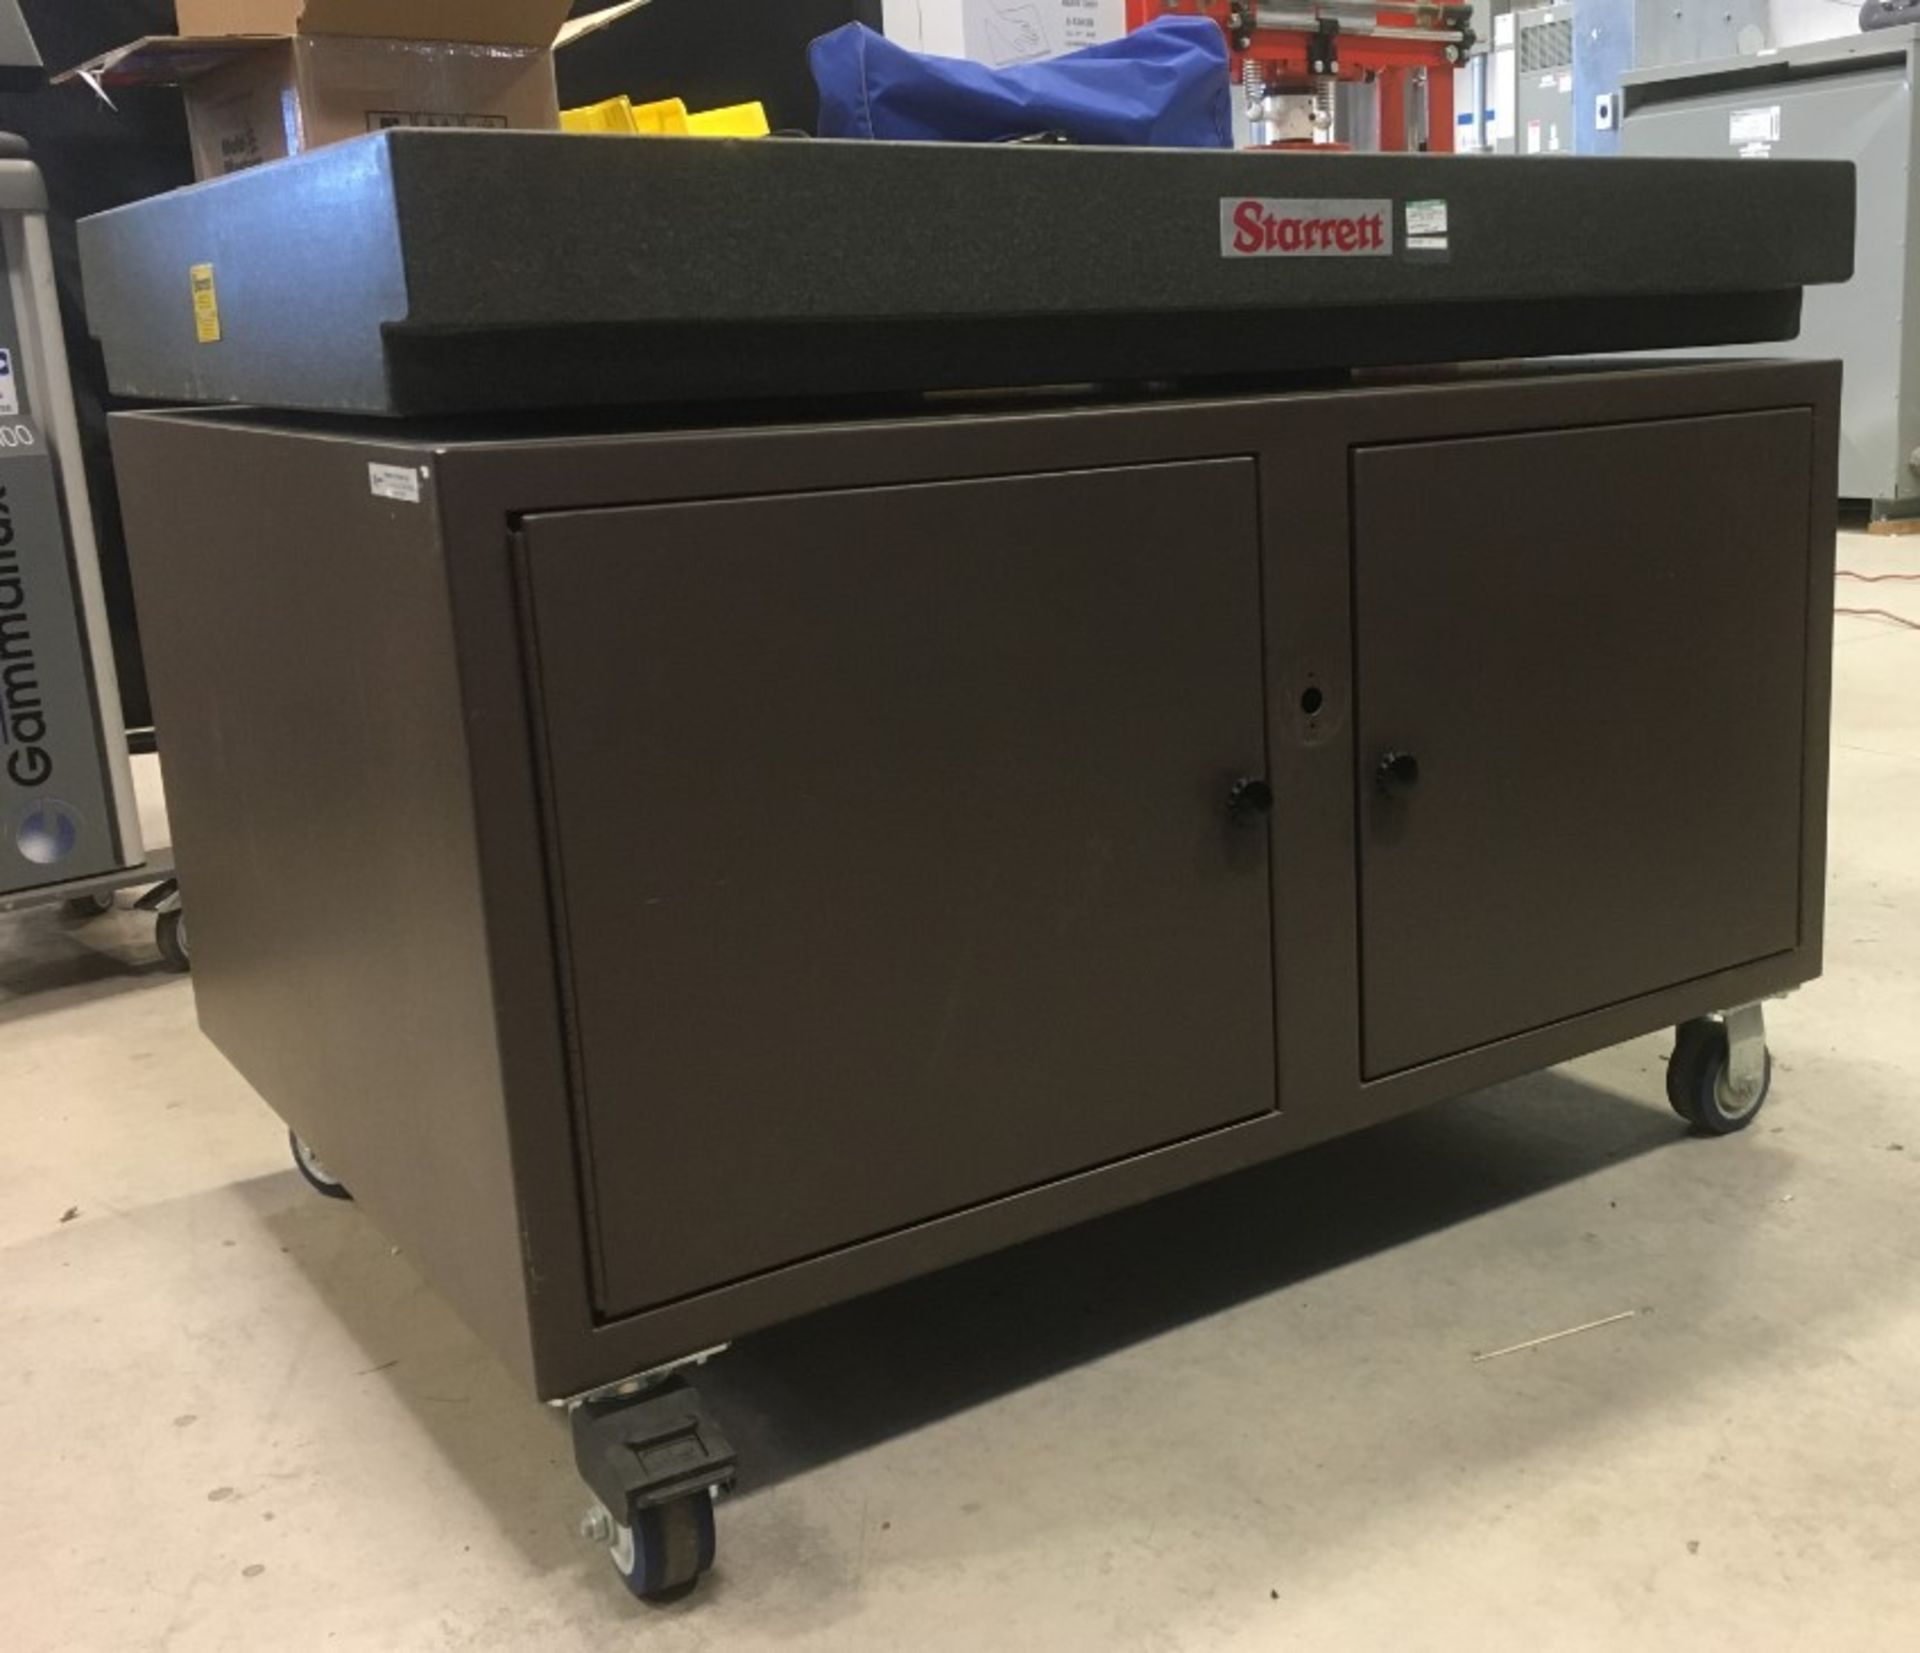 STARRETT 48ÓX36ÓX35ÓH GRANITE SURFACE PLATE WITH ROLLING STAND [RIGGING FEES FOR LOT# 10A - $50 - Image 2 of 3